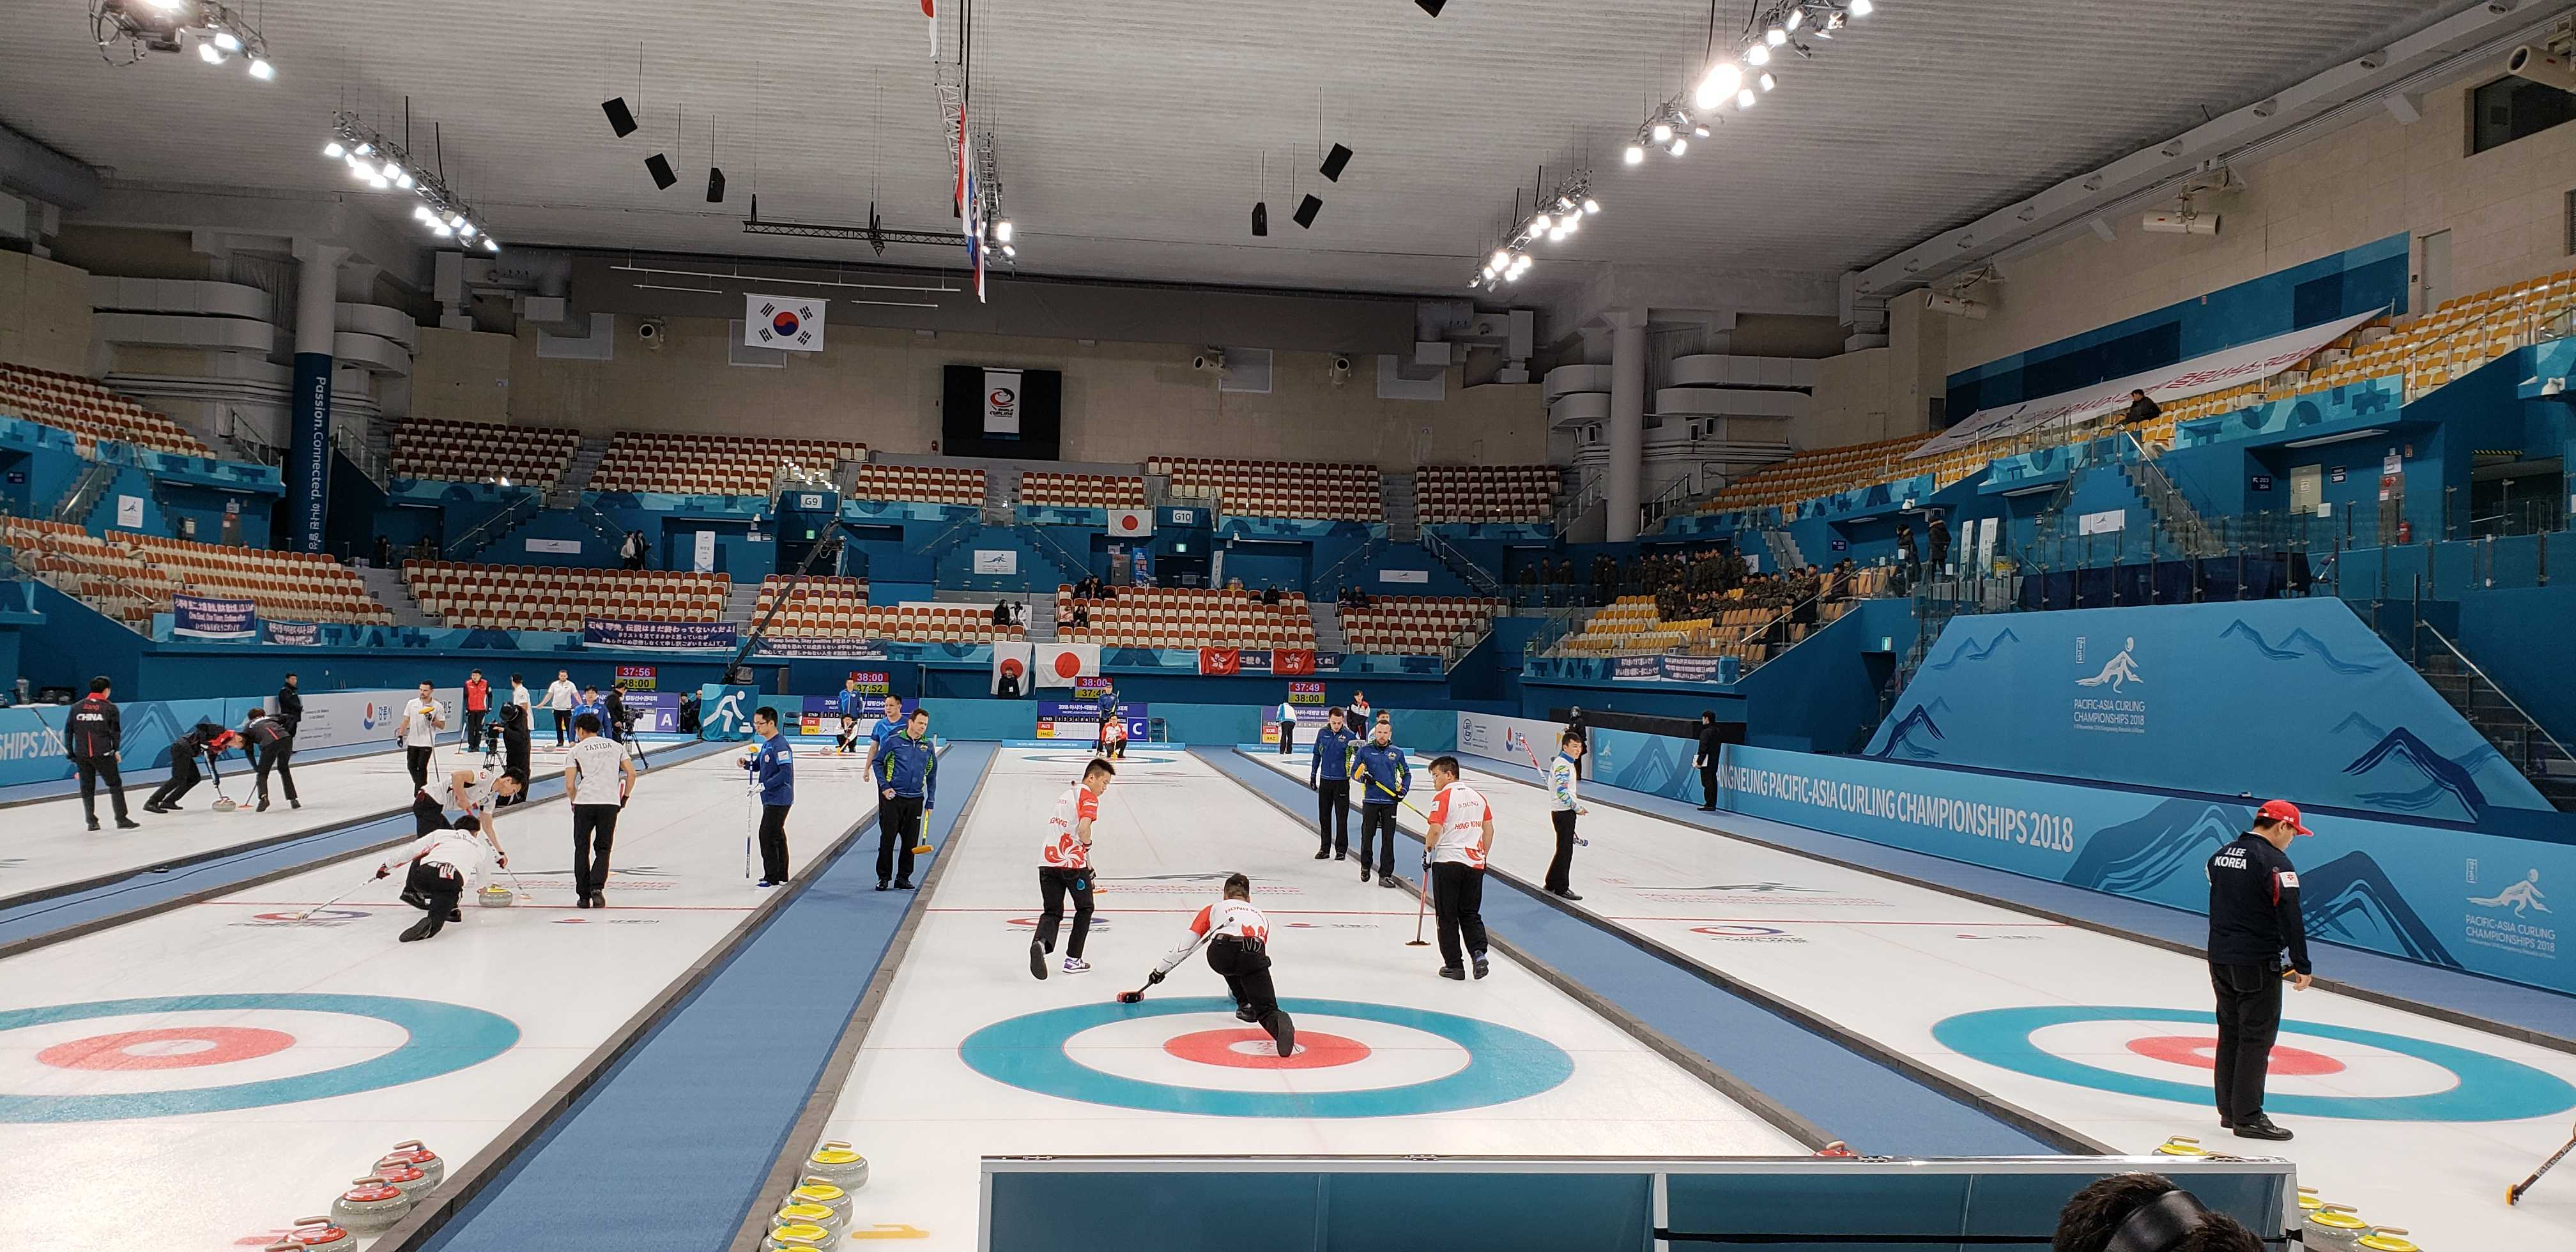 One student's journey to the Pacific-Asia Curling Championships